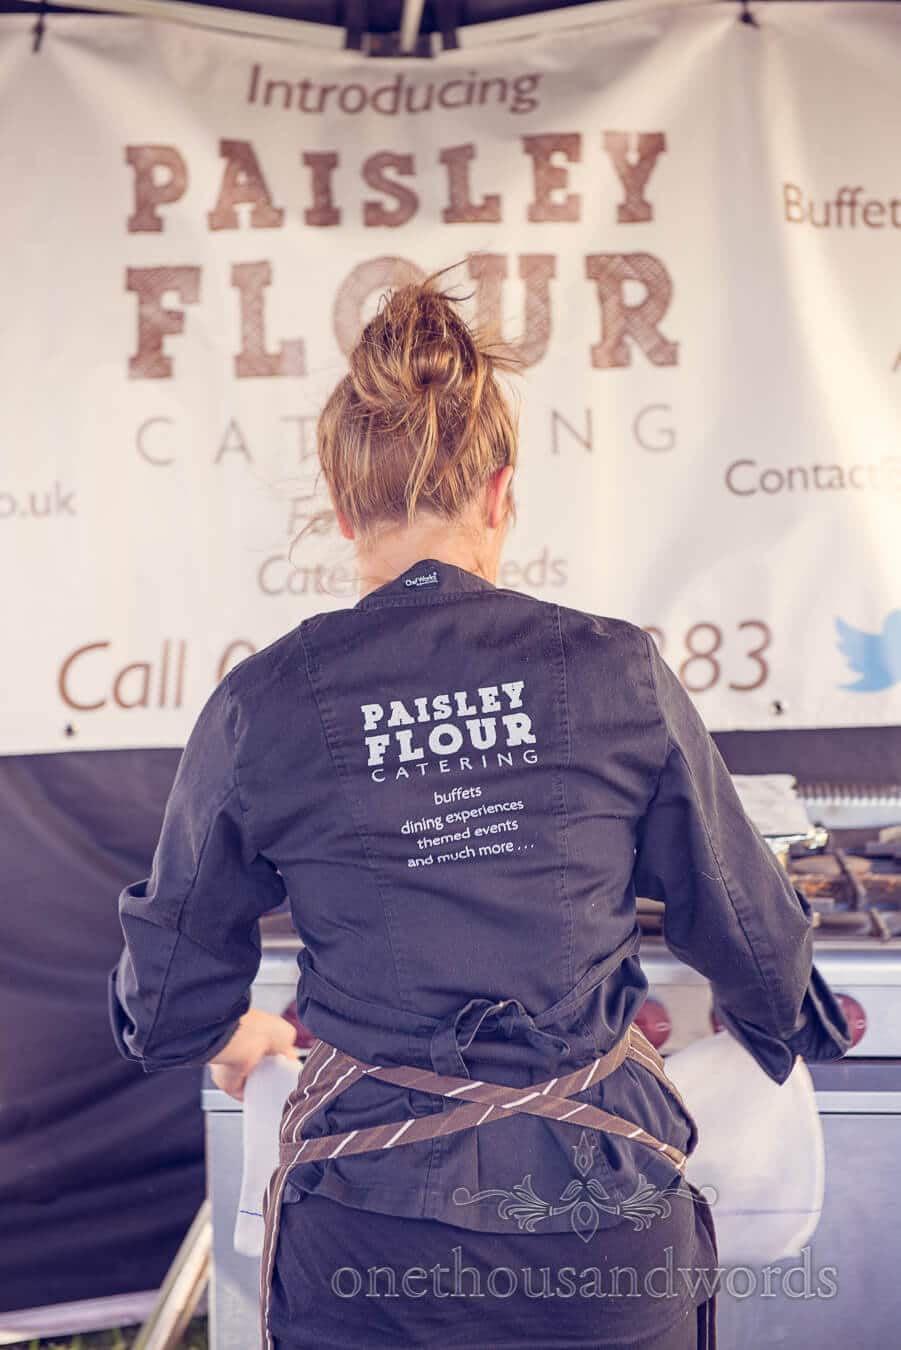 Paisley Flour Wedding Catering at Countryside Wedding